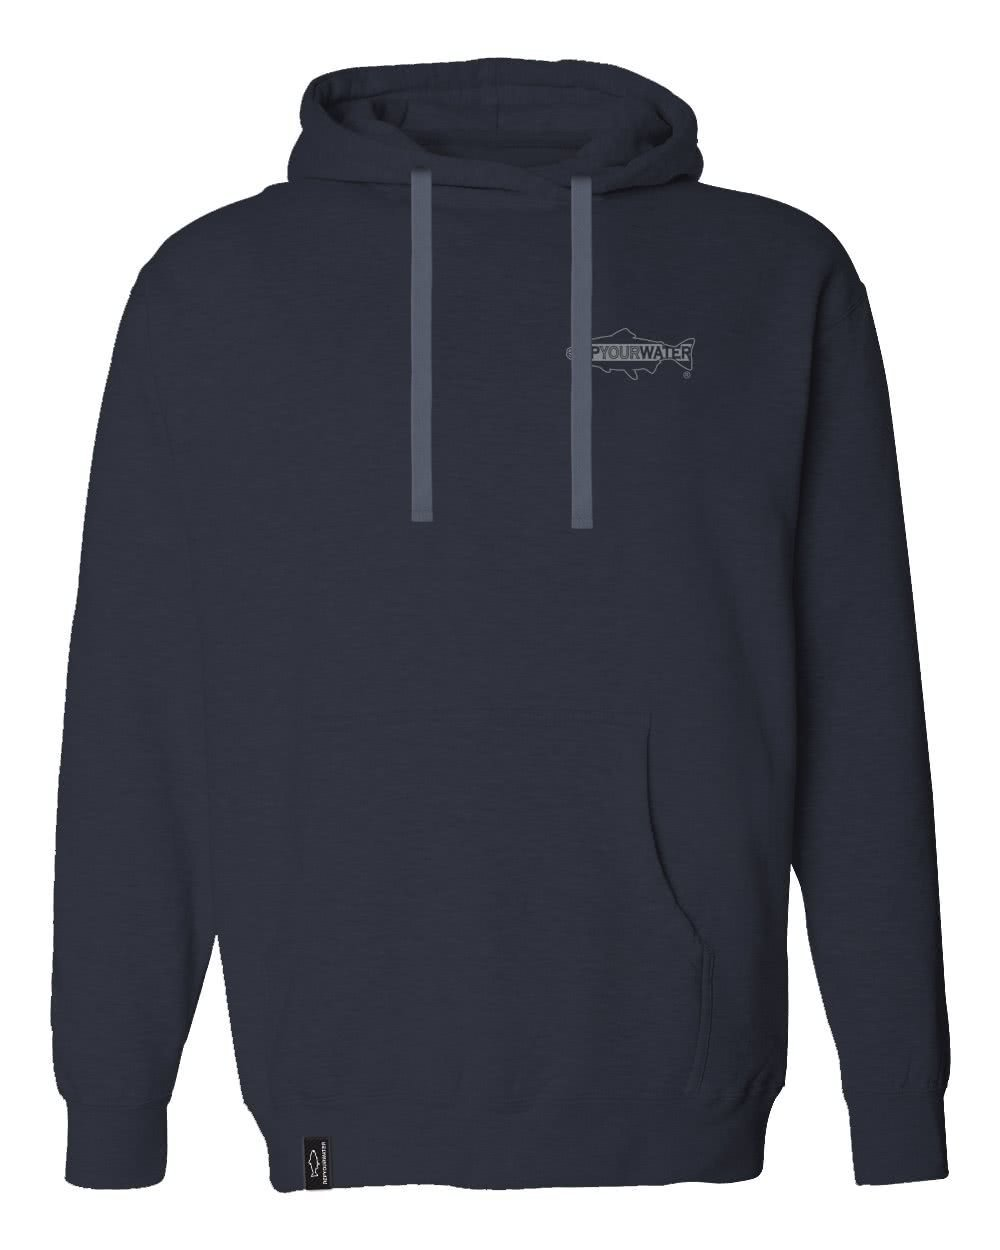 rep your water wild water mid-weight hoody front